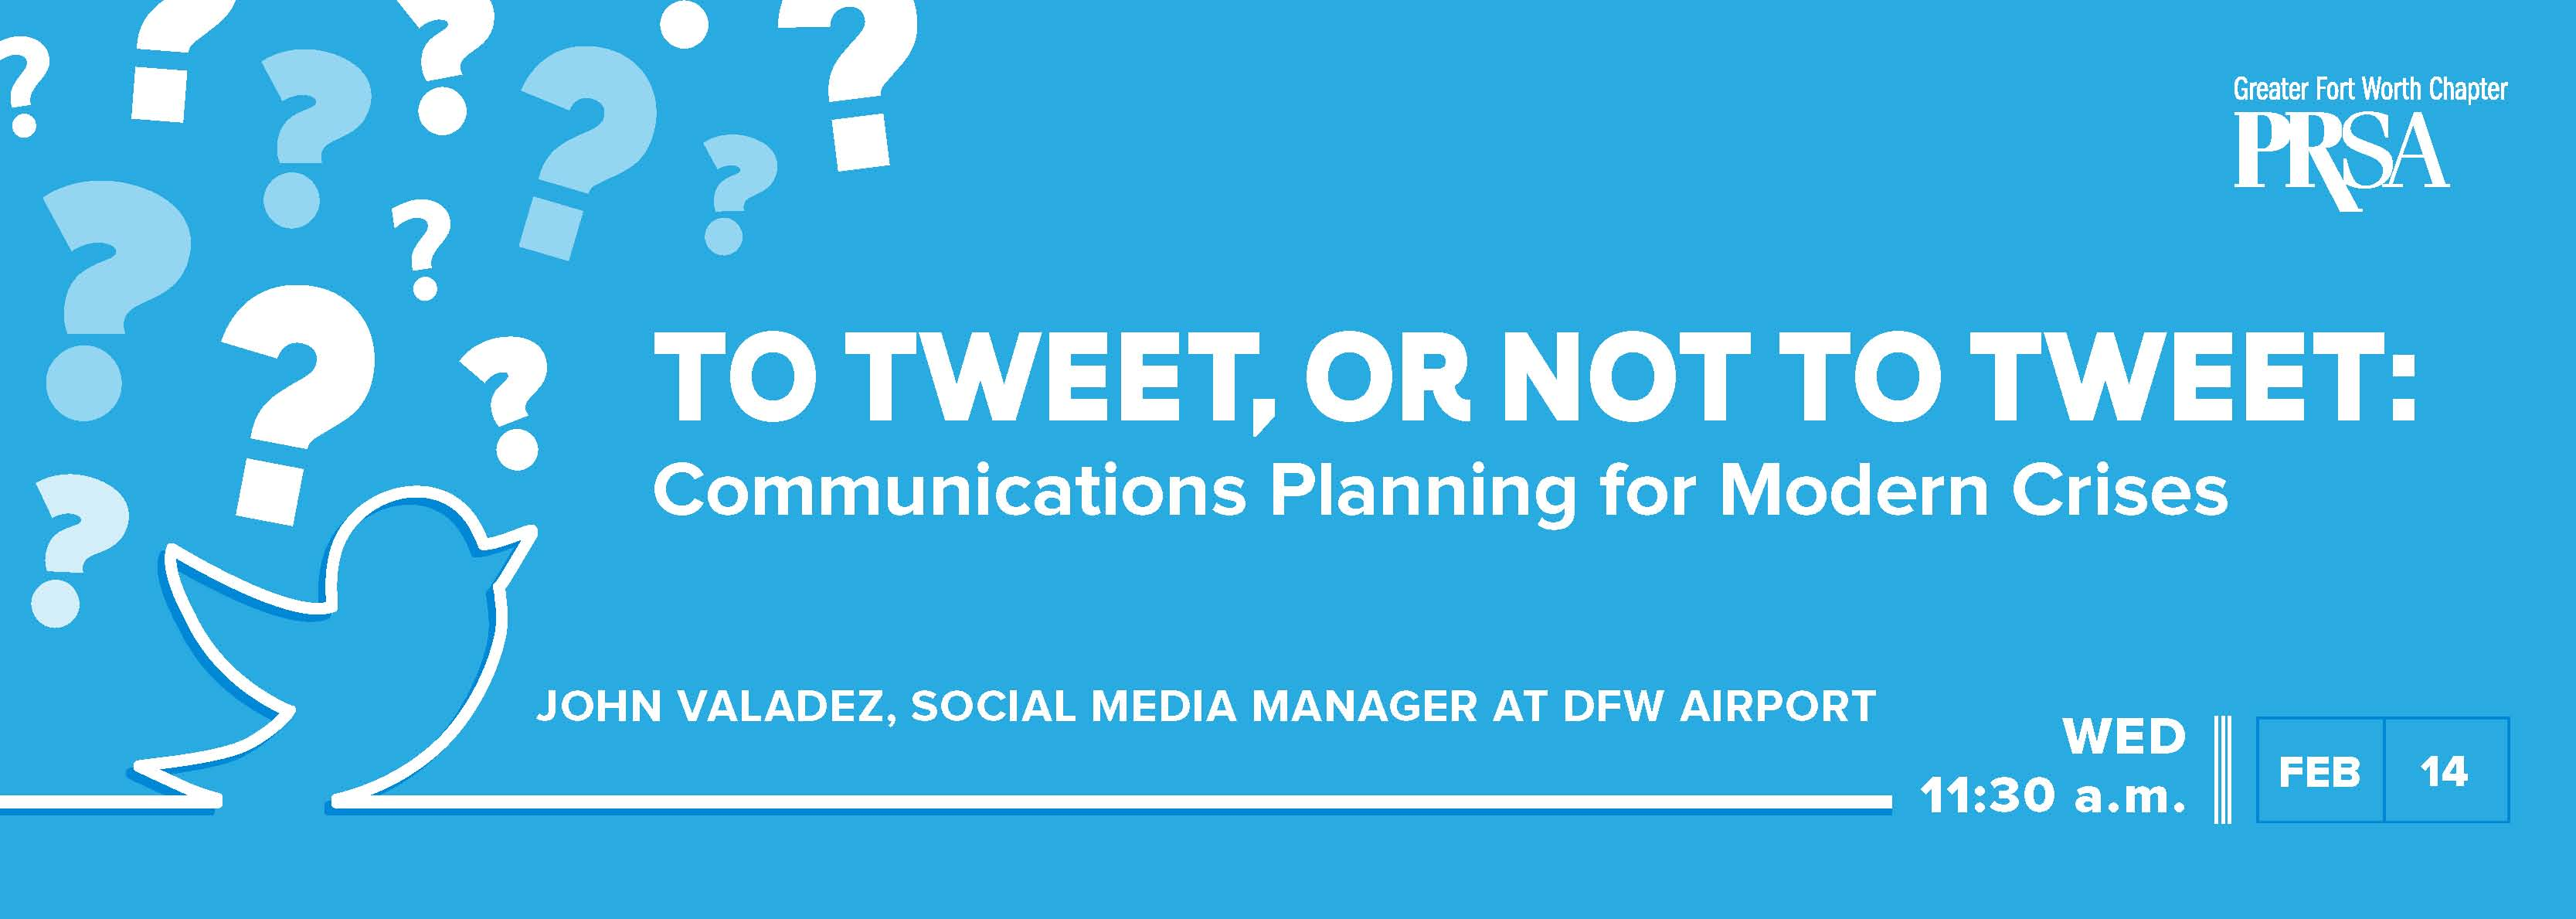 To Tweet, or Not to Tweet: Communications Planning for Modern Crises